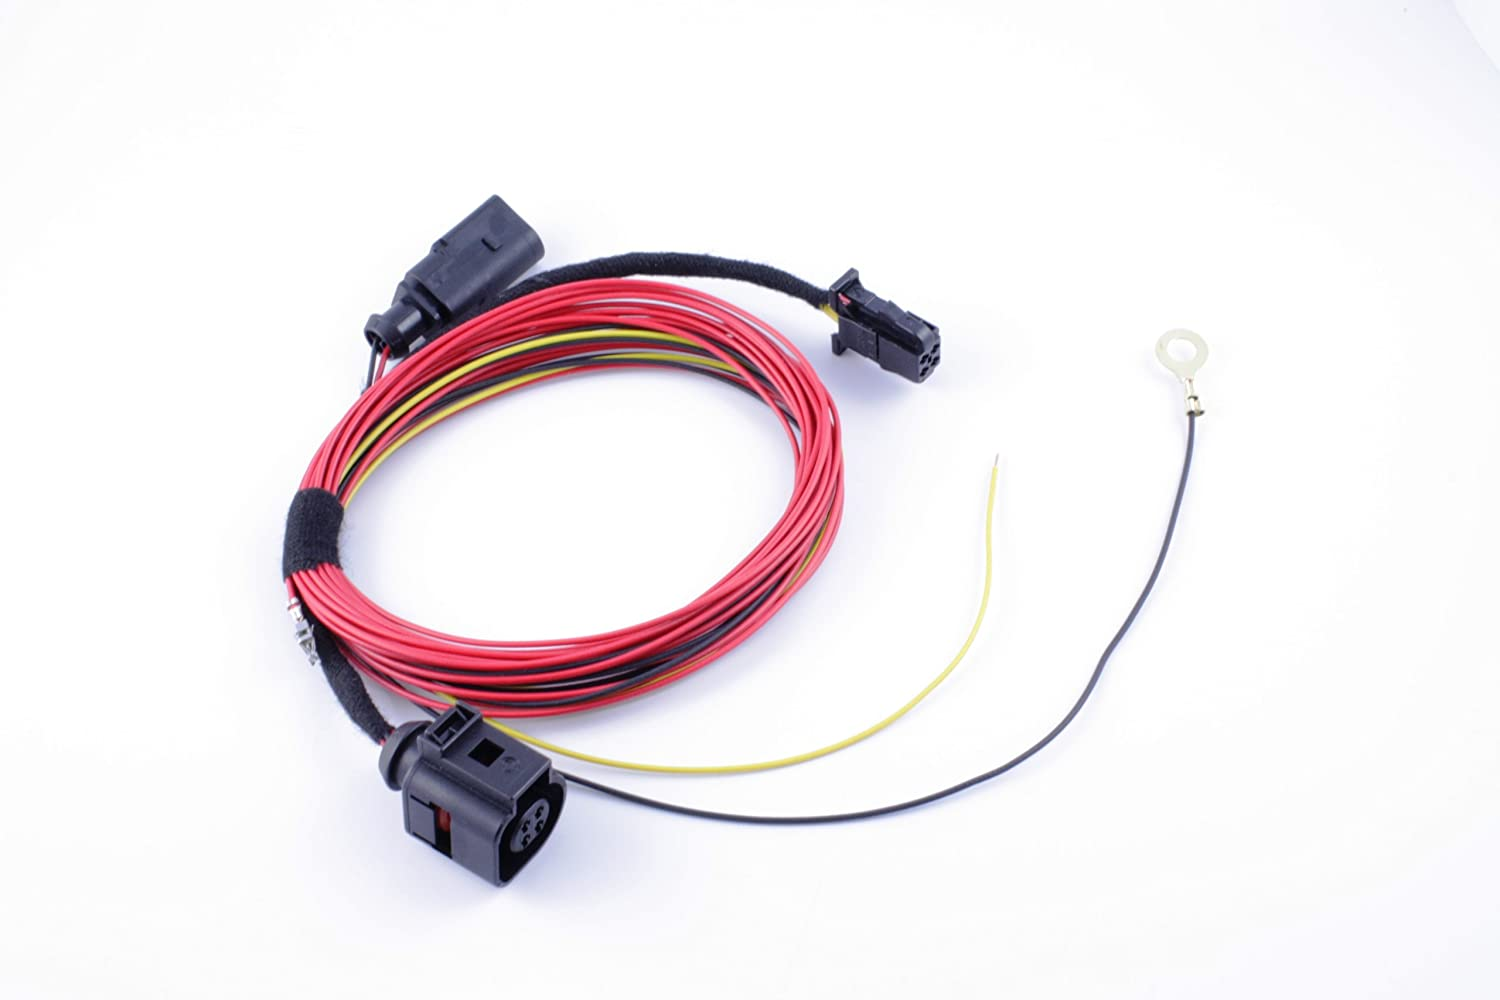 Genuine Volkswagen Backup Camera Kit For Mk6 Ford Sensor Wiring Harness Kits Gti 2010 2013 Automotive